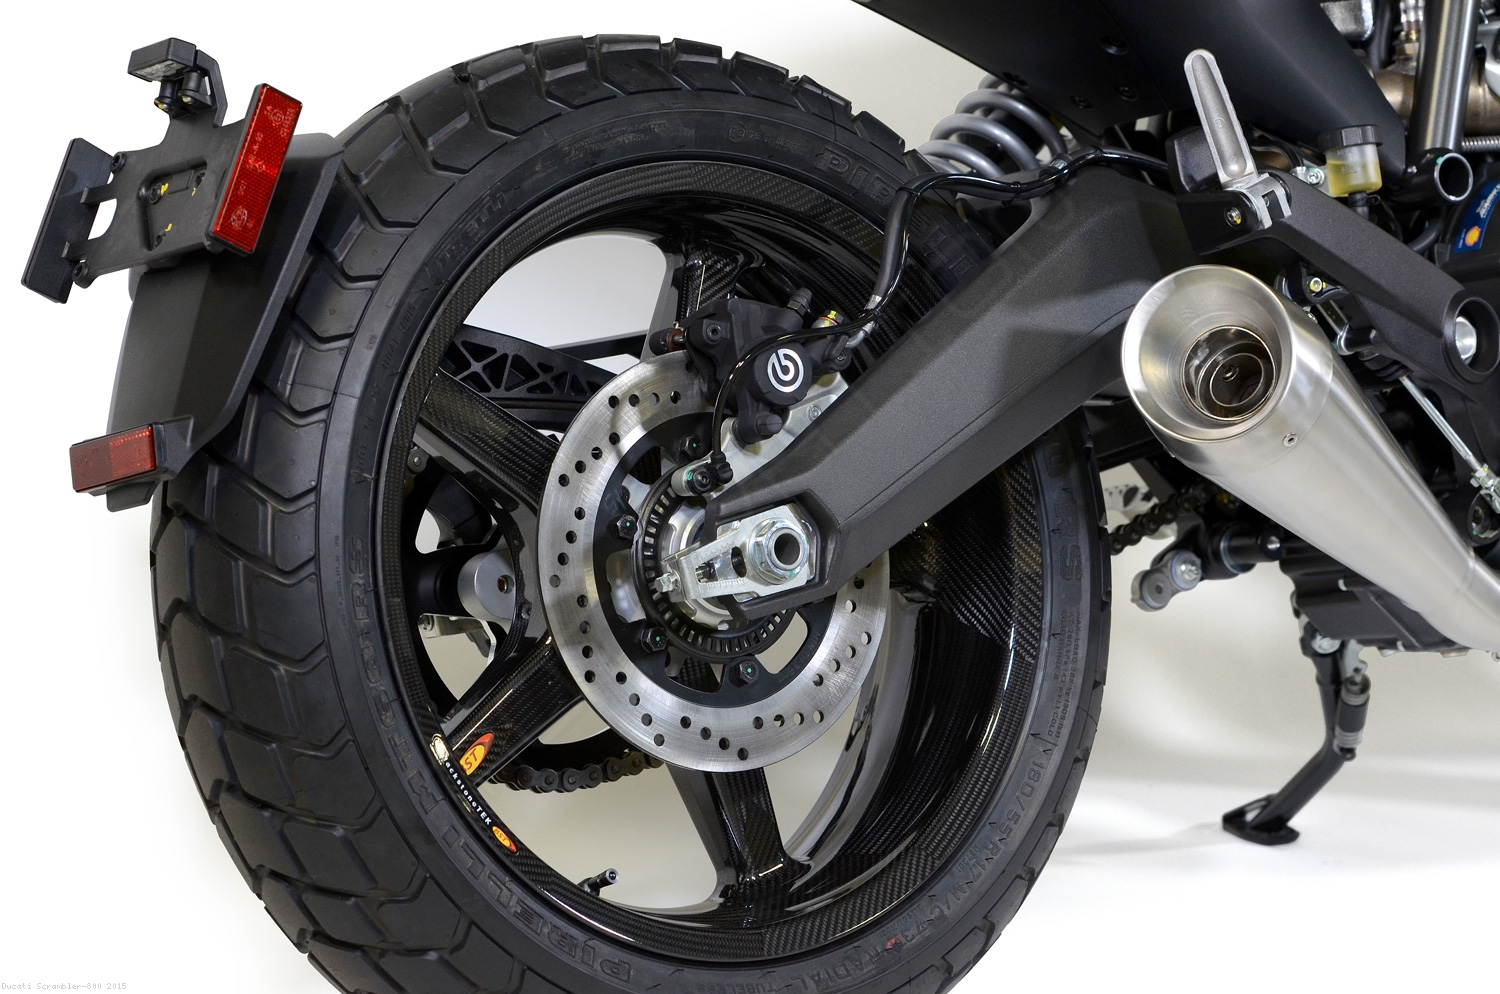 5 Spoke Carbon Fiber Wheel Set By Bst Ducati Scrambler 800 2015